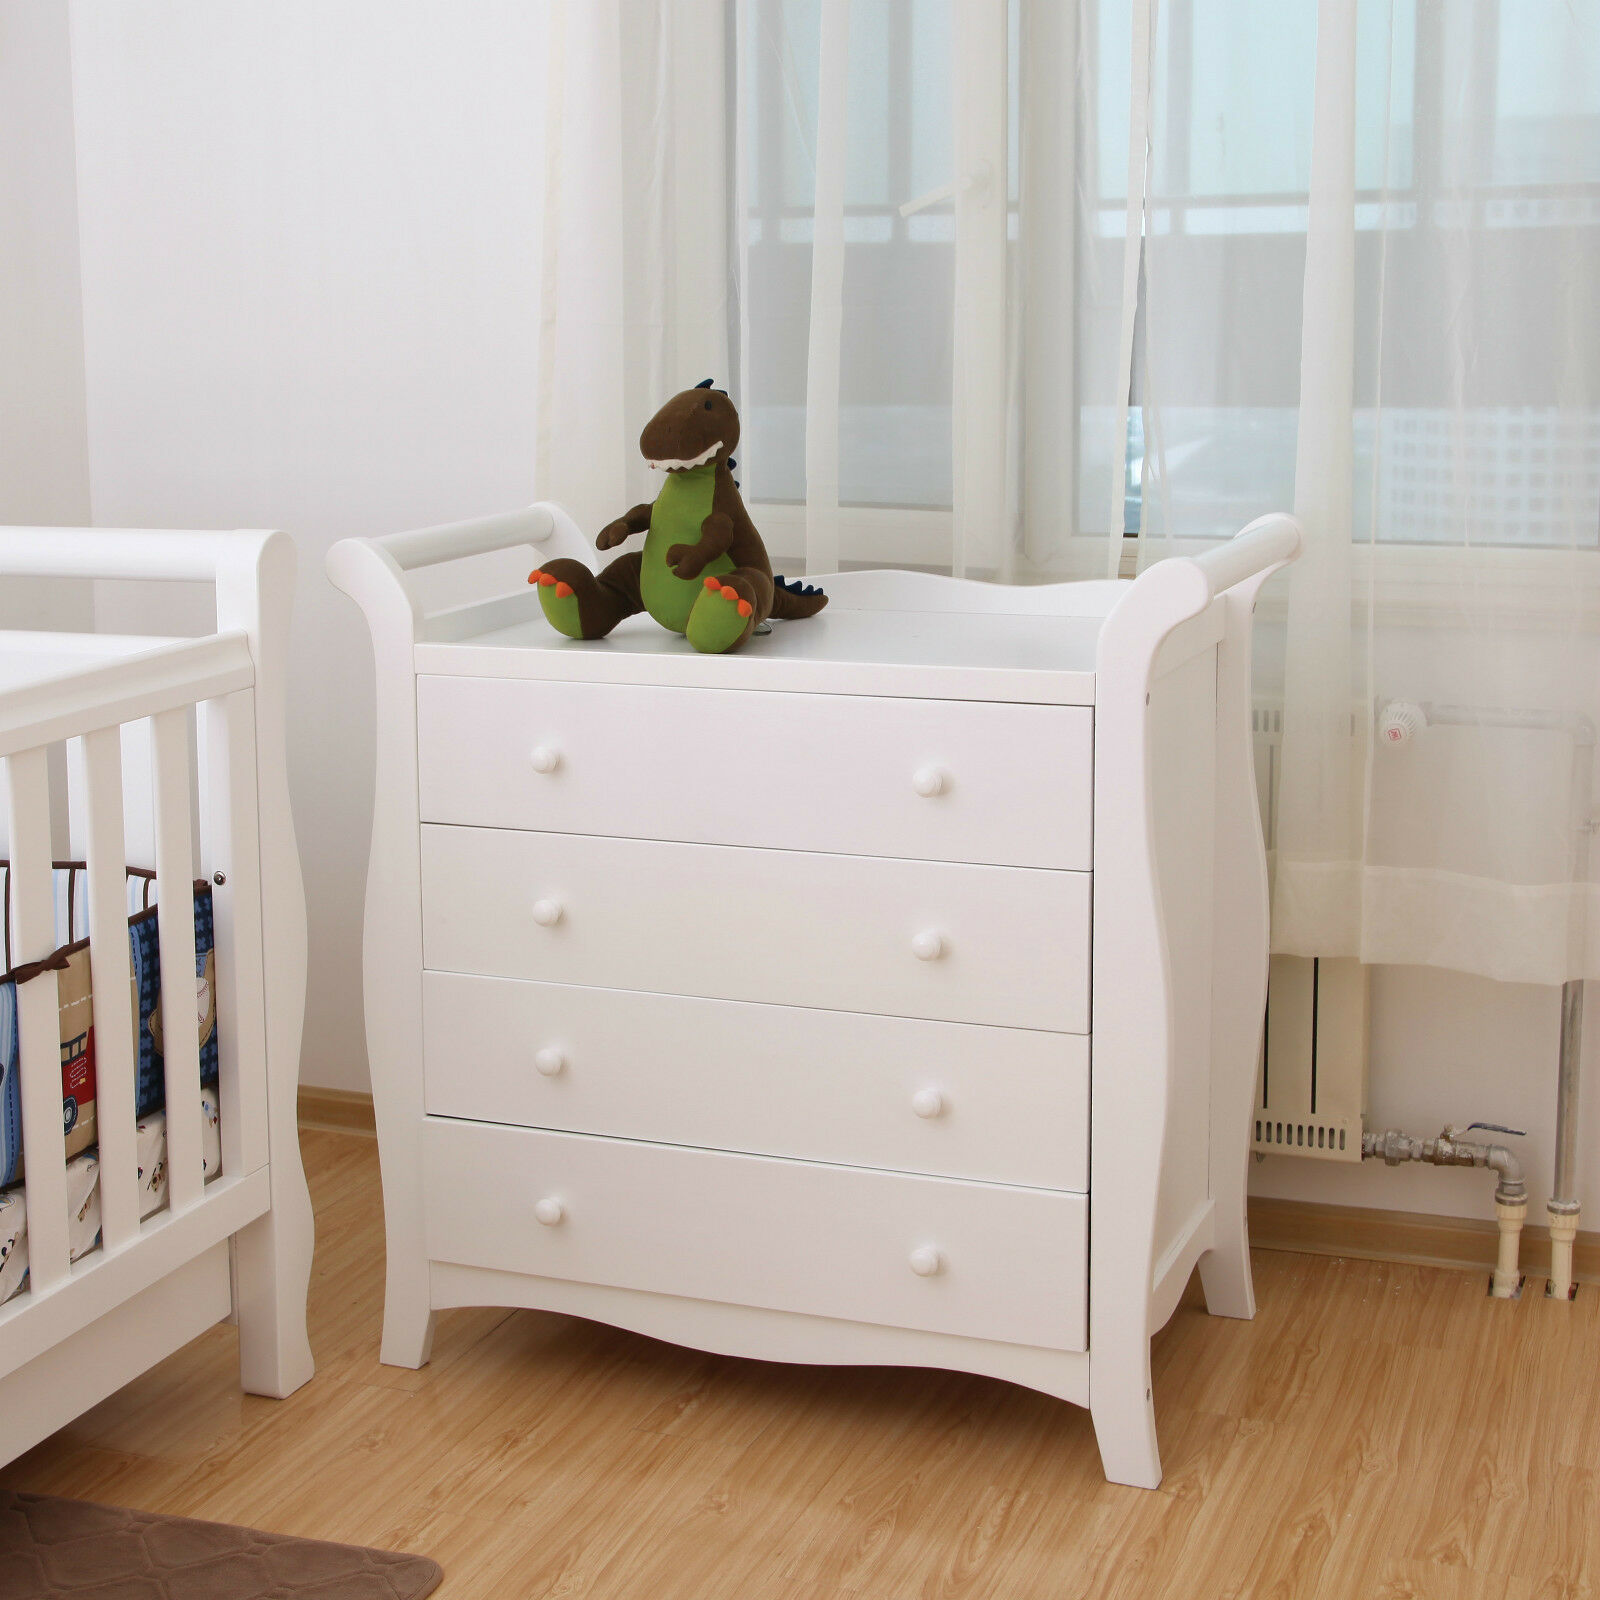 BNIB White New Zealand Pine Baby Change Table 4 Chest of Drawers